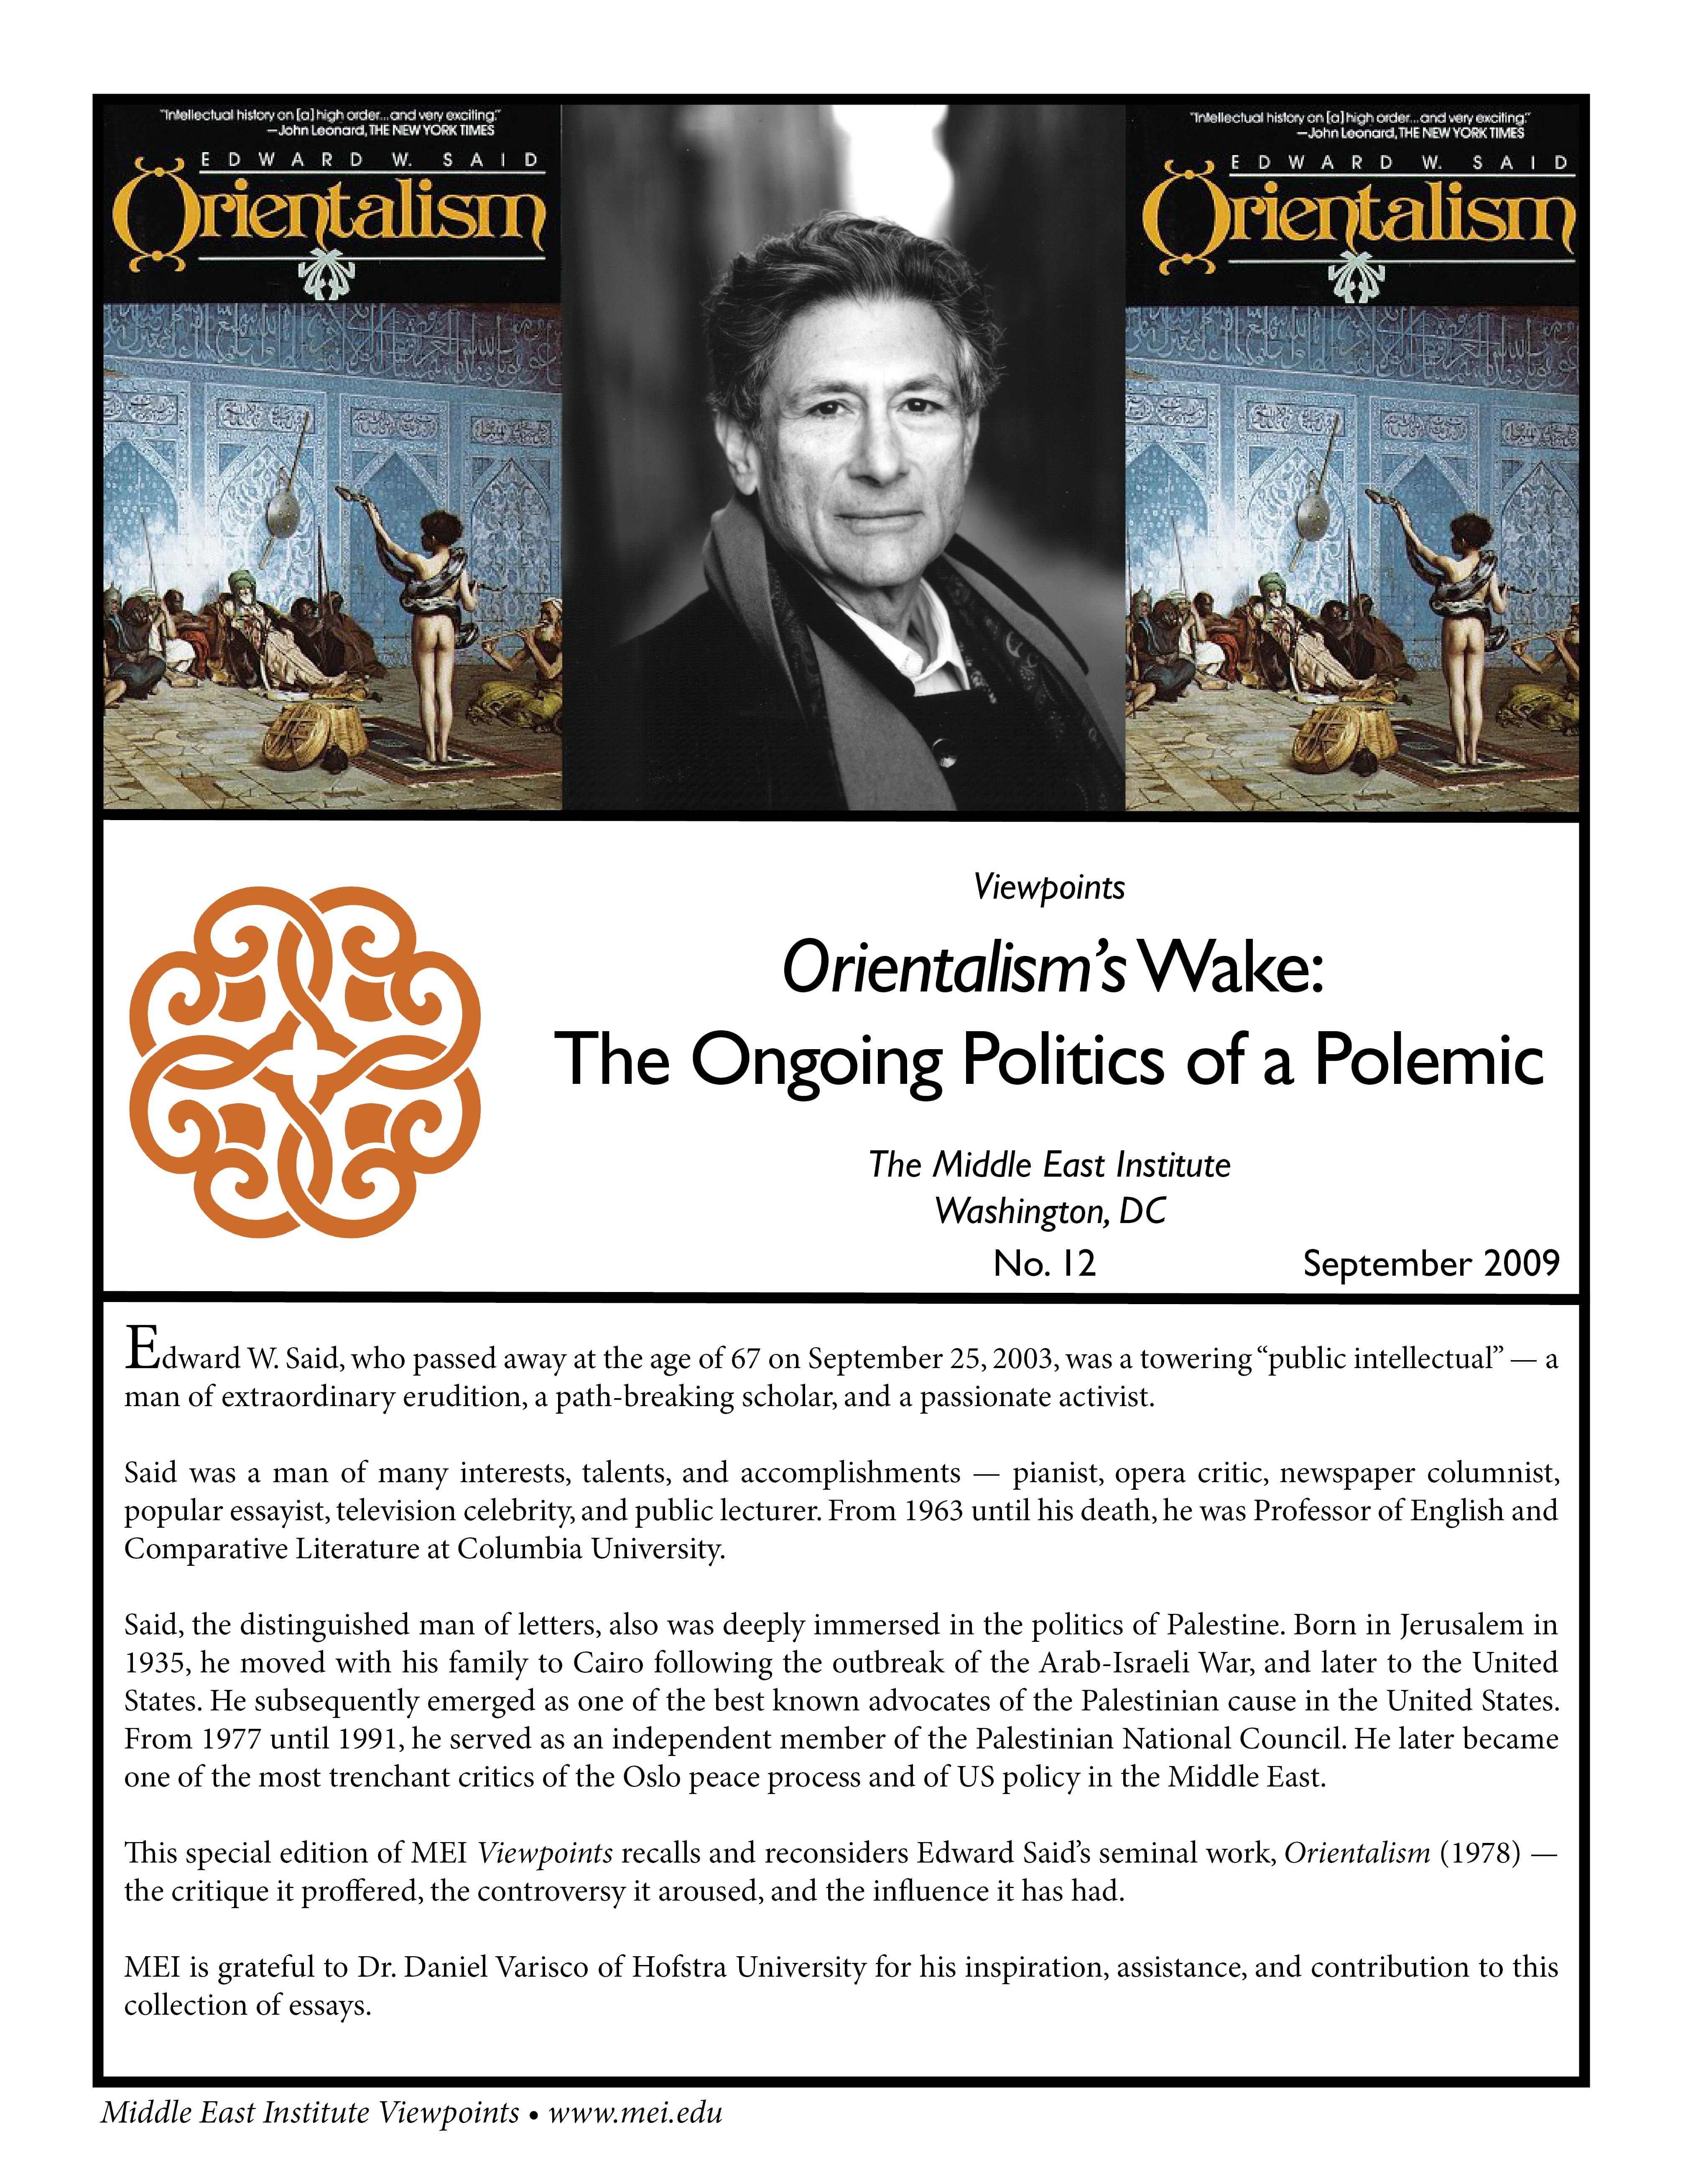 orientalism an overview essay Critical notes on edward said fundamental questions that aijaz ahmad has raised about said's method in his essay, 'orientalism and after' (in theory.